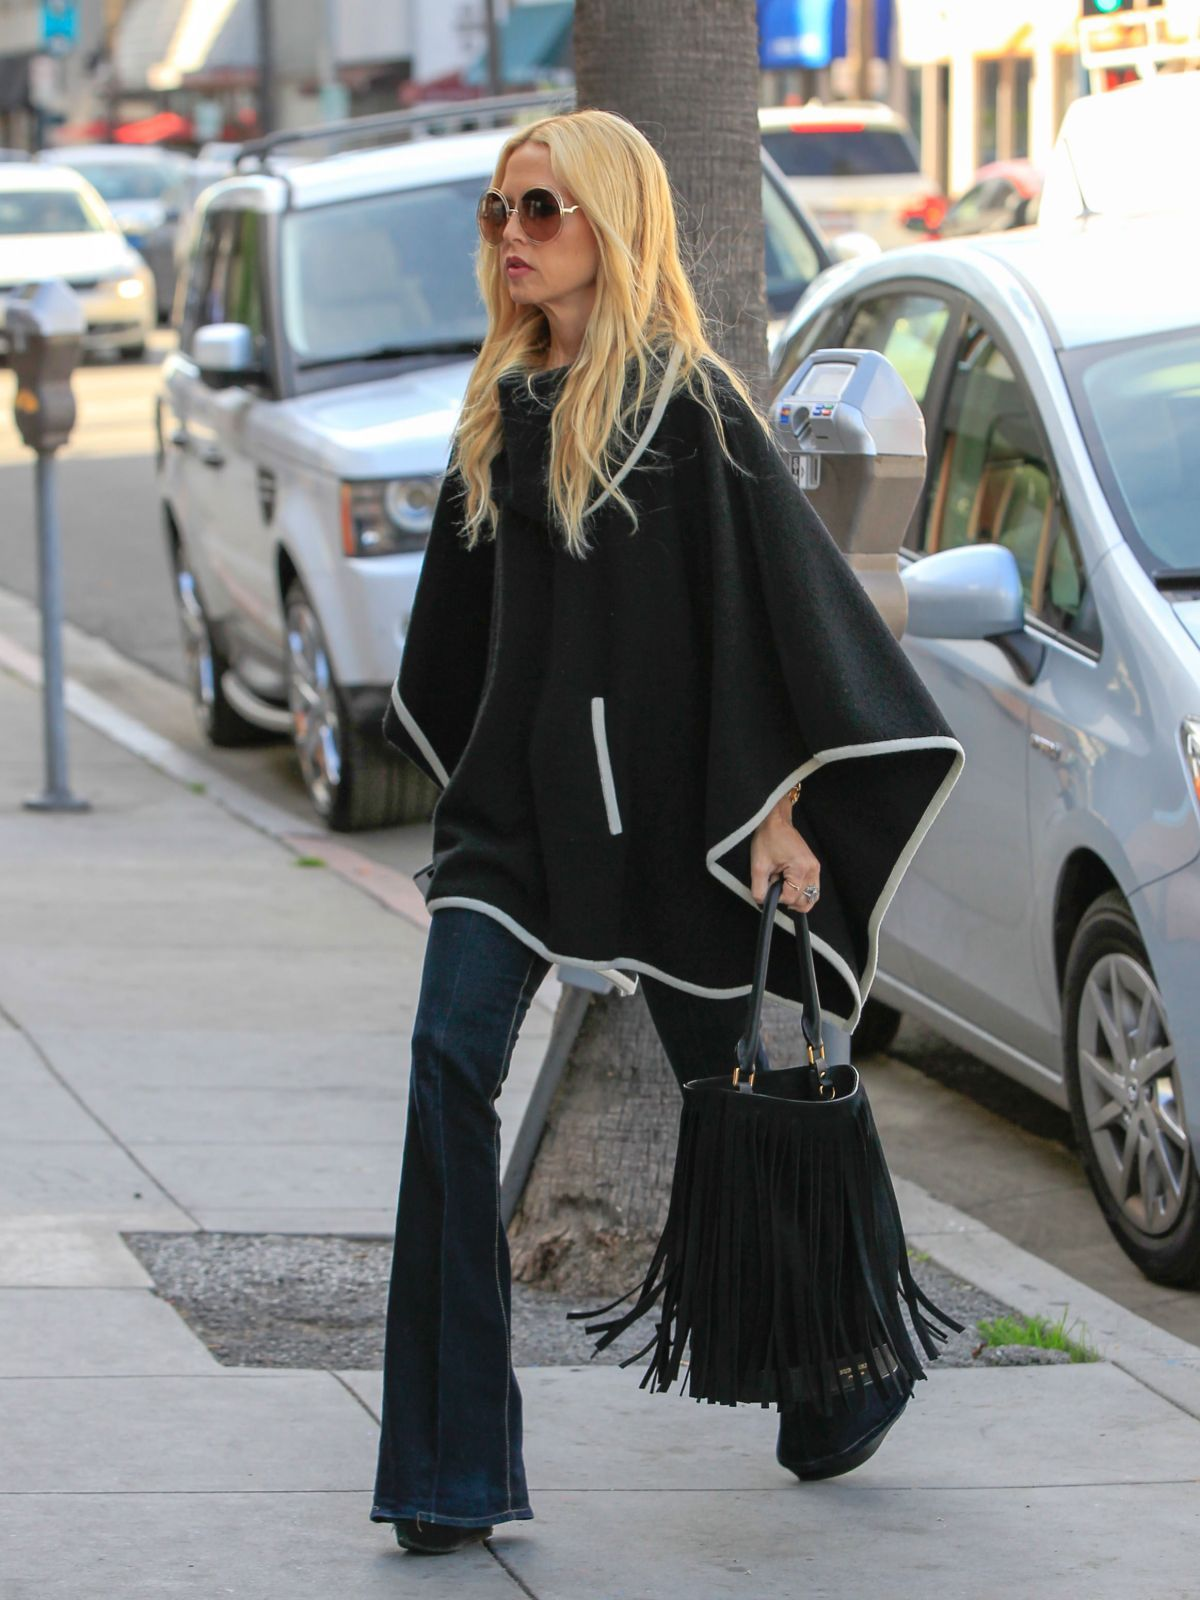 January 21, 2016 - Out and about in LA